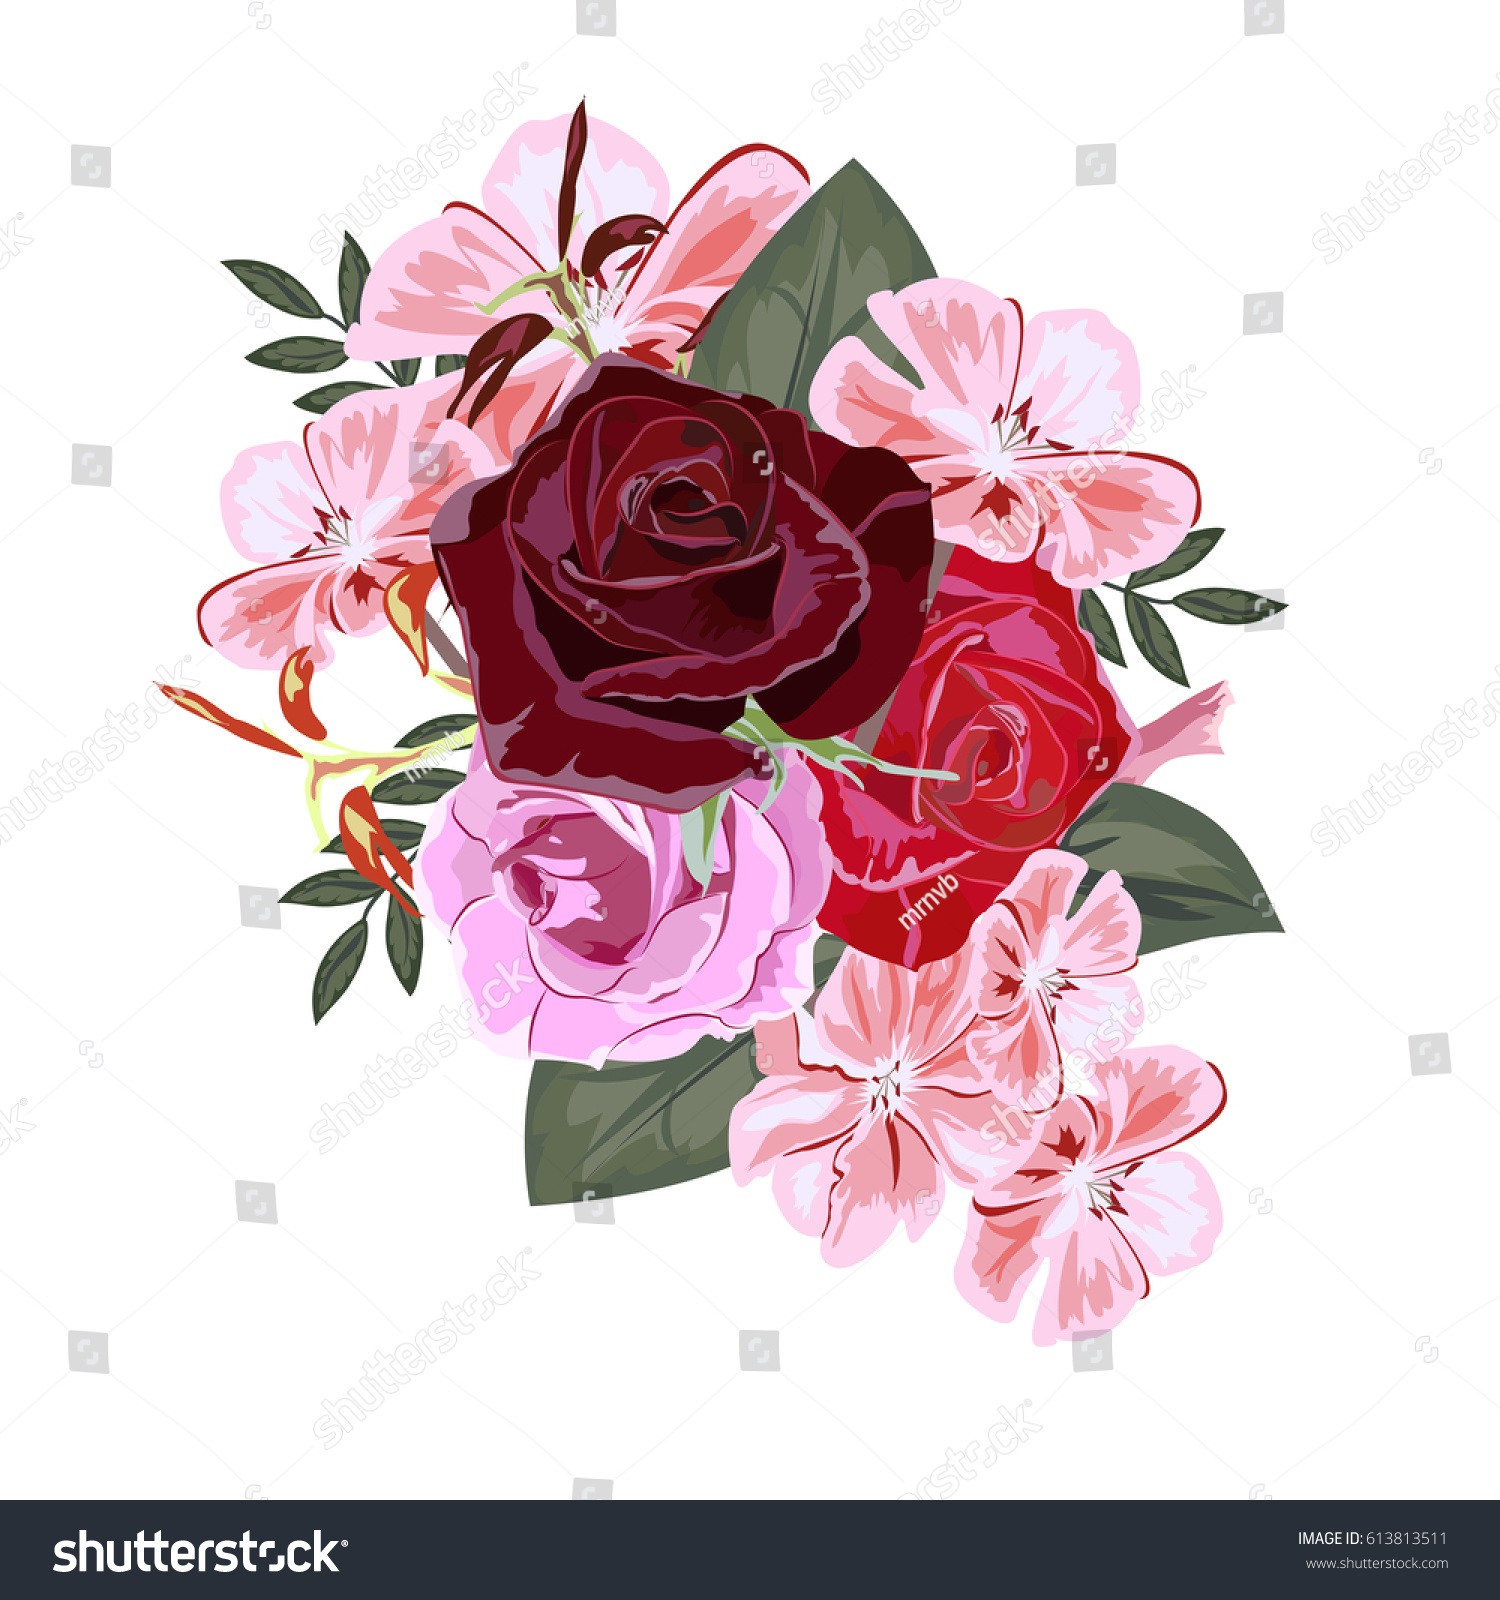 Bouquet Red Roses Pink Geranium Decor Stock Vector (Royalty Free ...